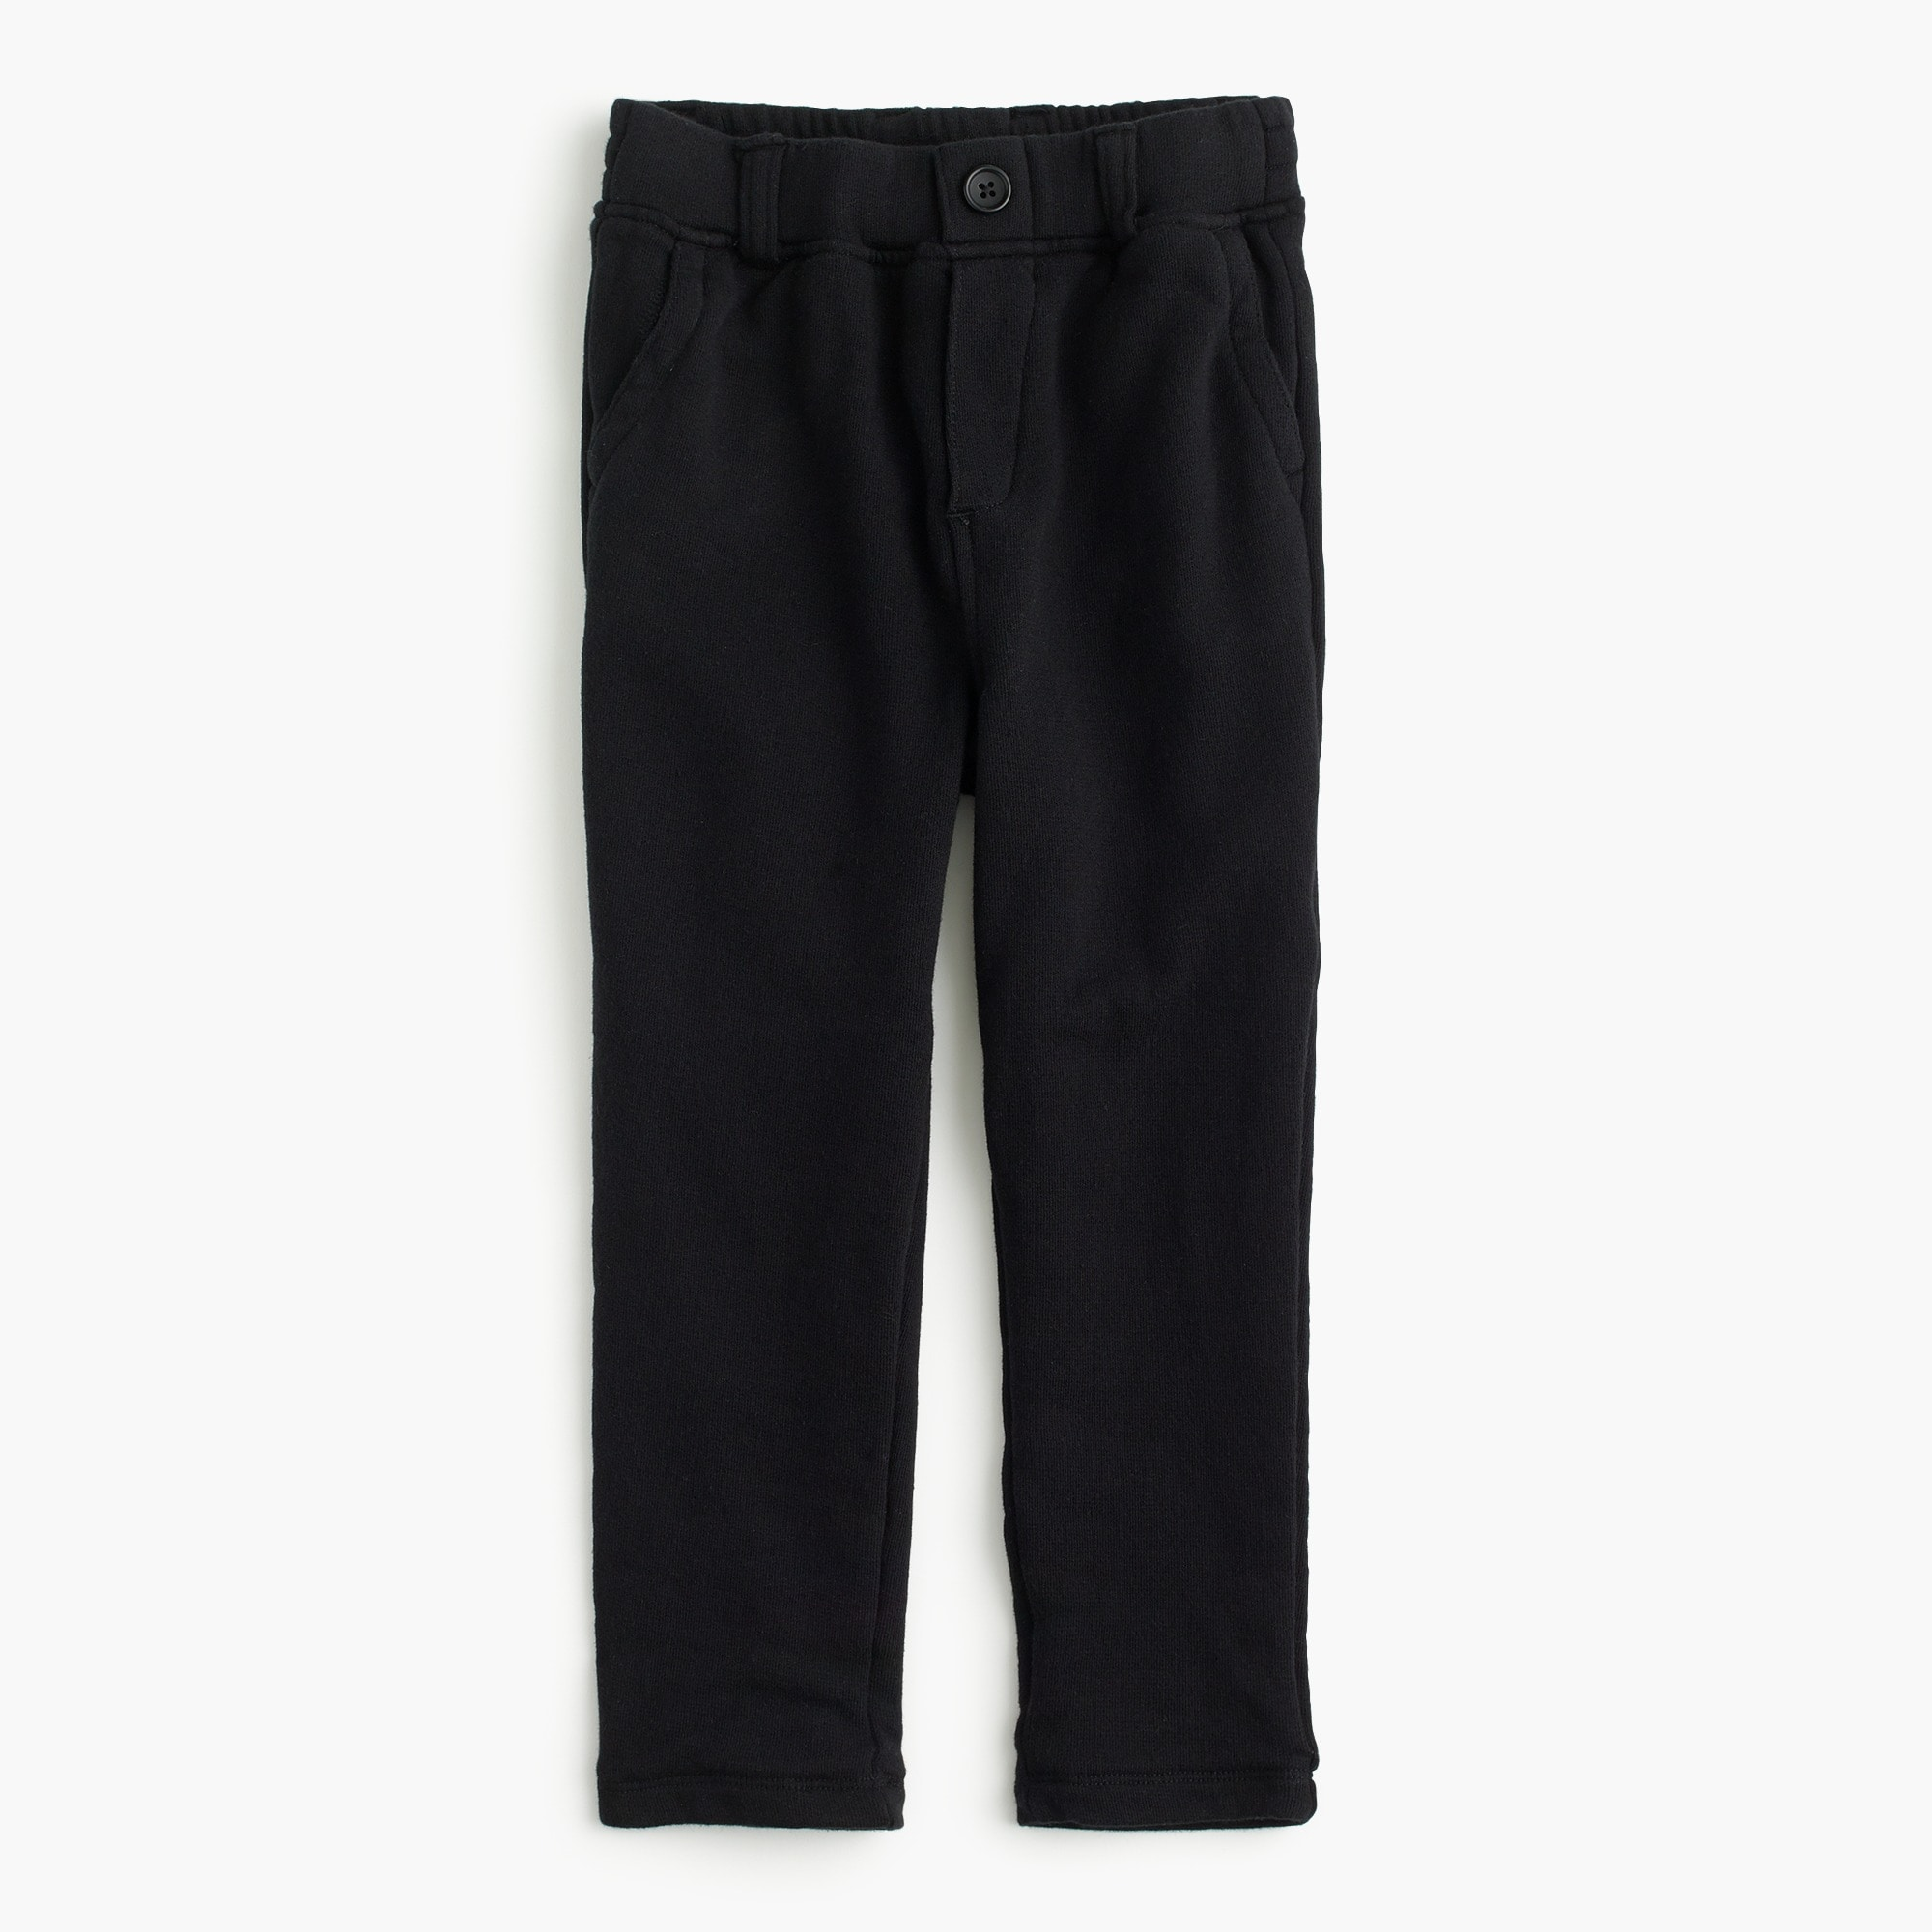 Image 2 for Boys' button-front stripe-lined sweatpants